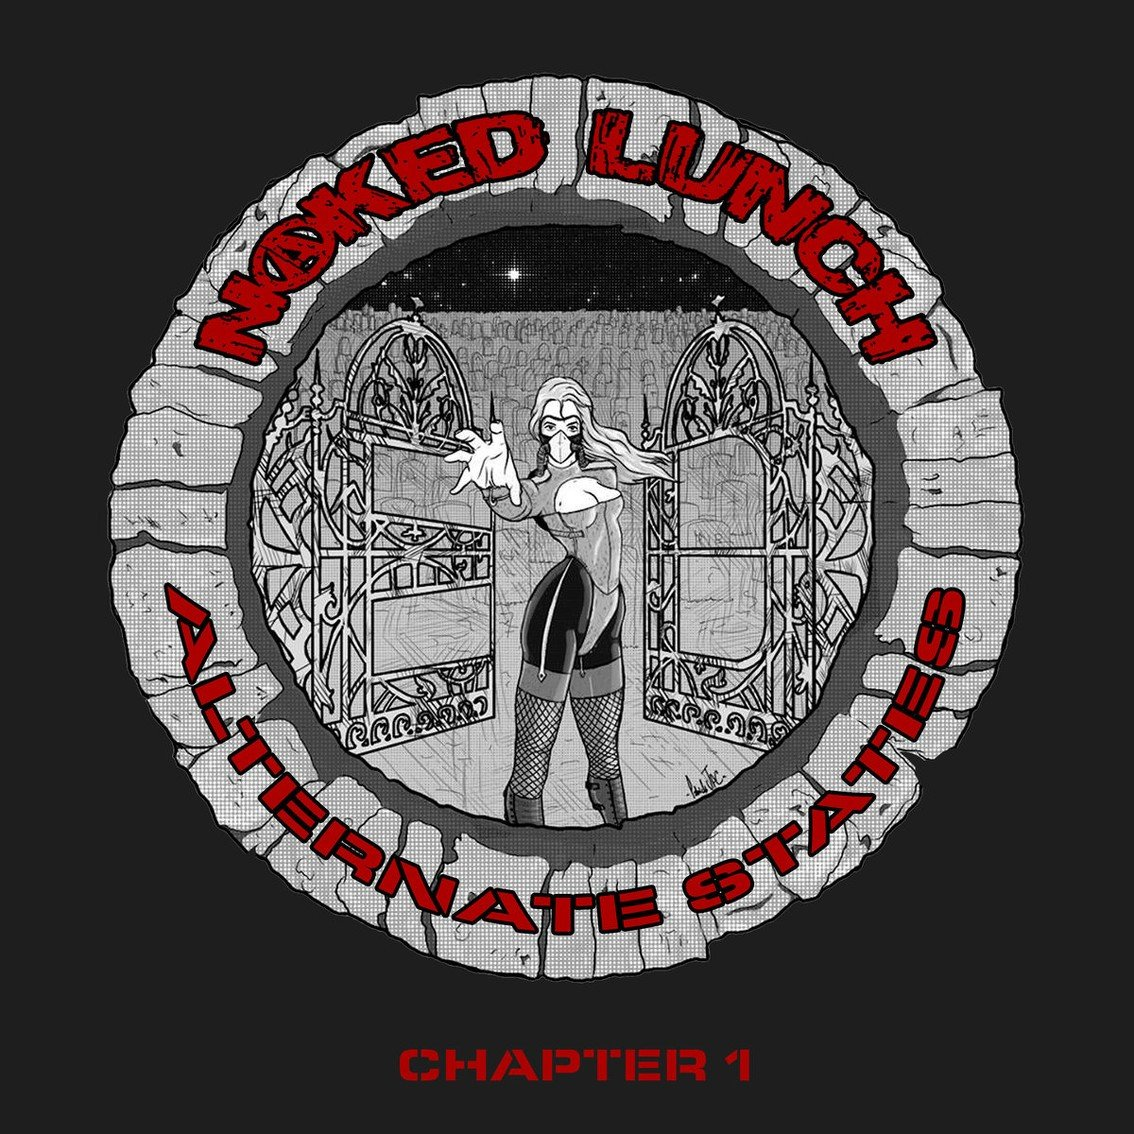 New EP for cult act Naked Lunch, 'Alternate States : chapter 1' - out now featuring re-recording 'Some Bizzare Album' track 'La Femme' - Depeche Mode fans will love this one!